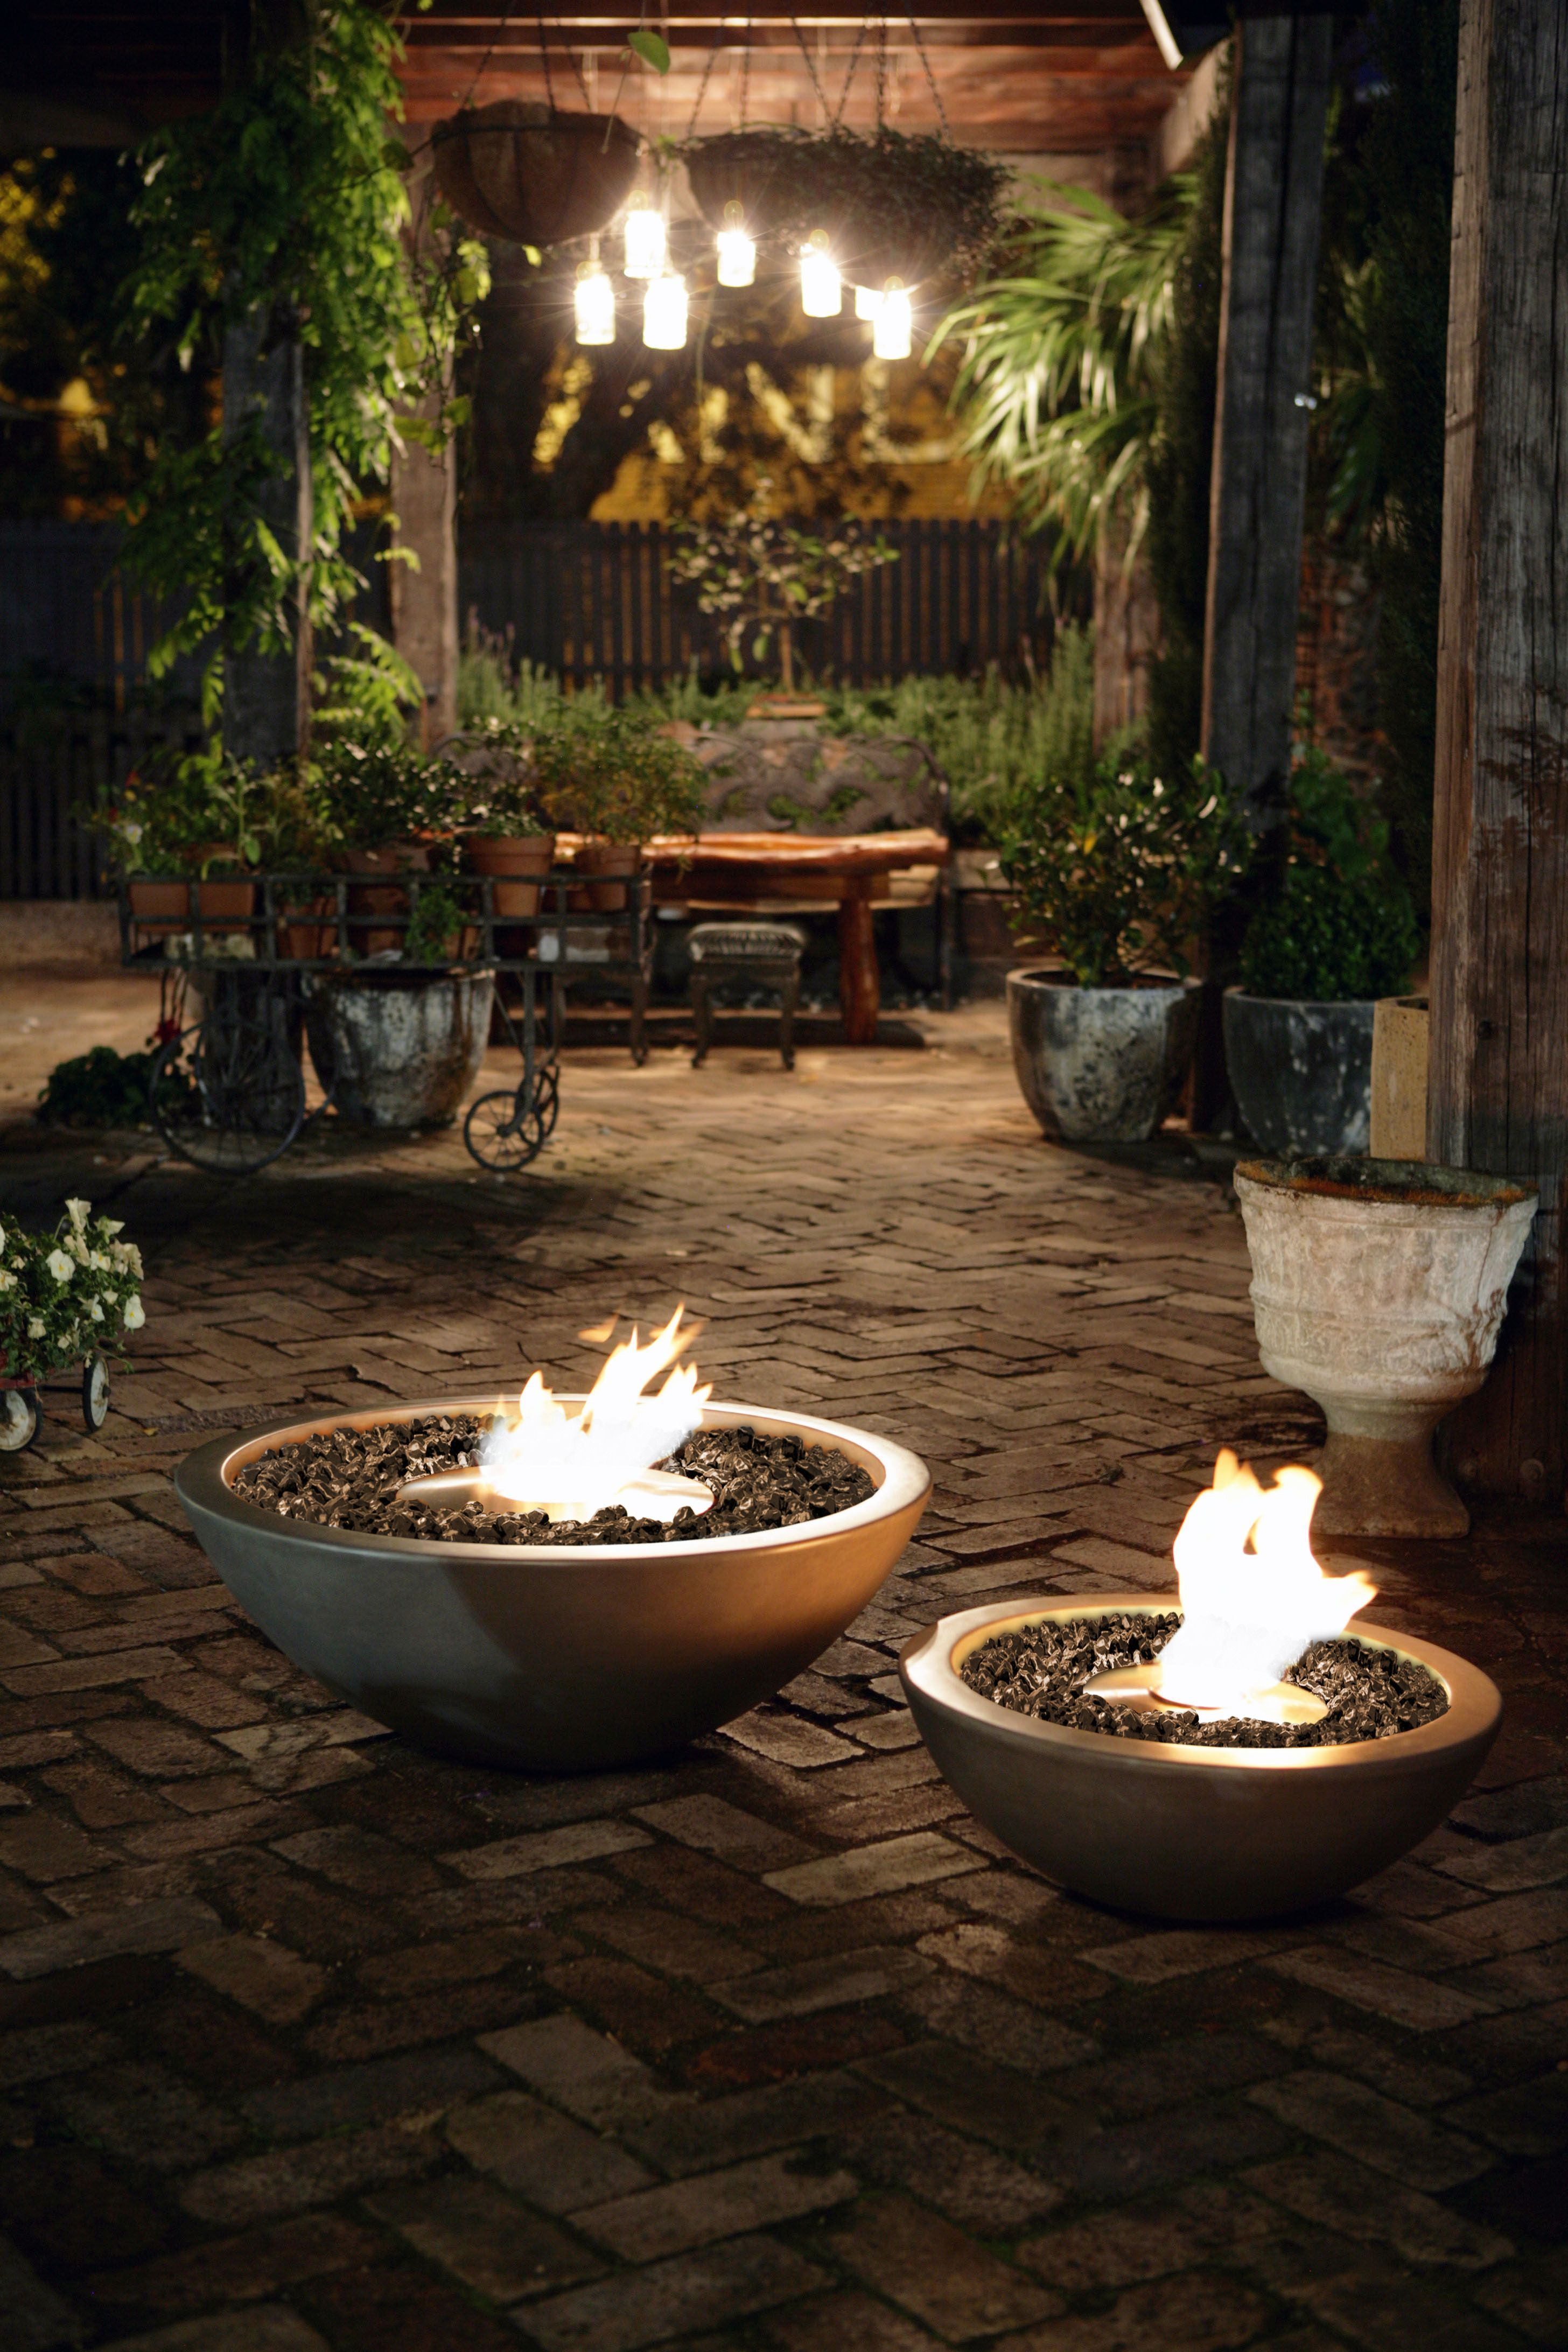 Crafted In The Outdoor Fire Pit Style But With Many Unique Differences The All Weather Mix 600 Little Sist Backyard Fire Fire Pit Backyard Garden Fire Pit